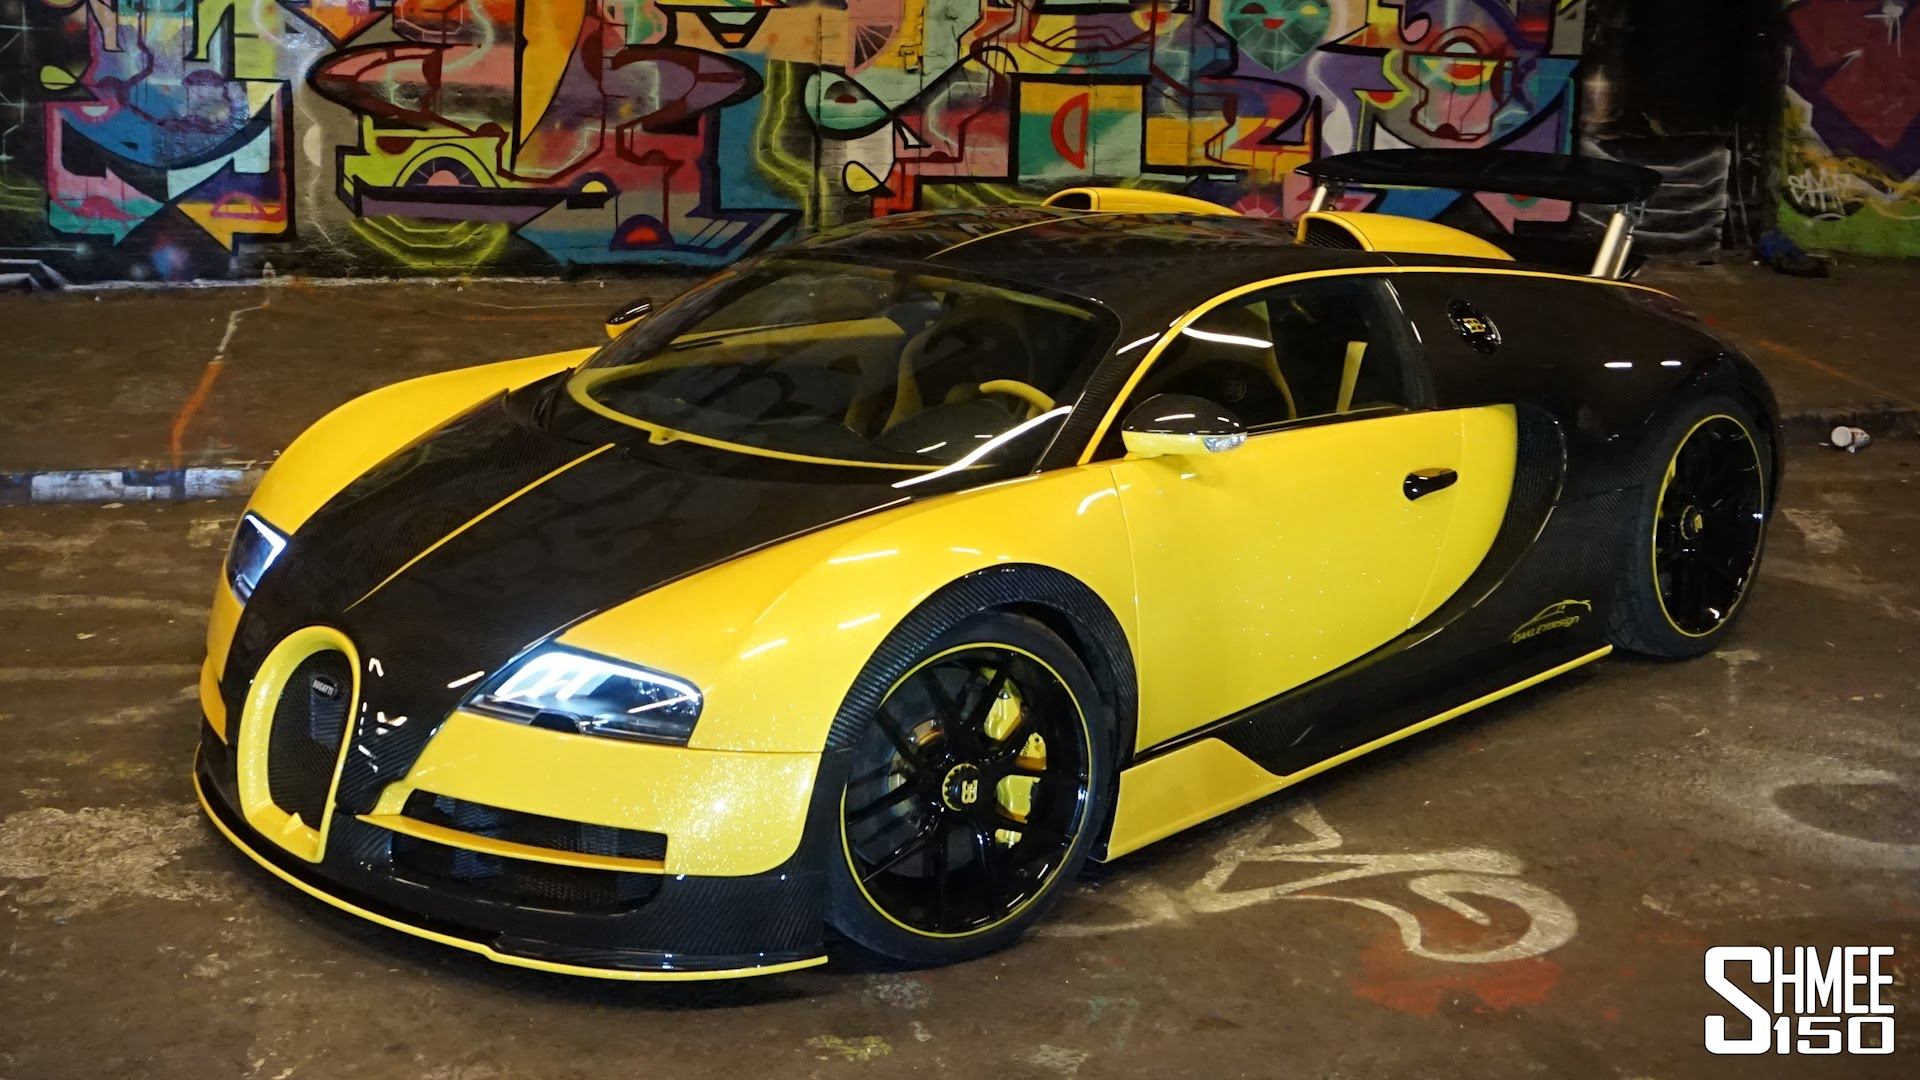 oakley-design-bugatti-veyron-might-be-the-best-looking-supercar-we-8217-ve-seen-in-a-while-1 Inspiring Bugatti Veyron Quarter Mile Speed Cars Trend